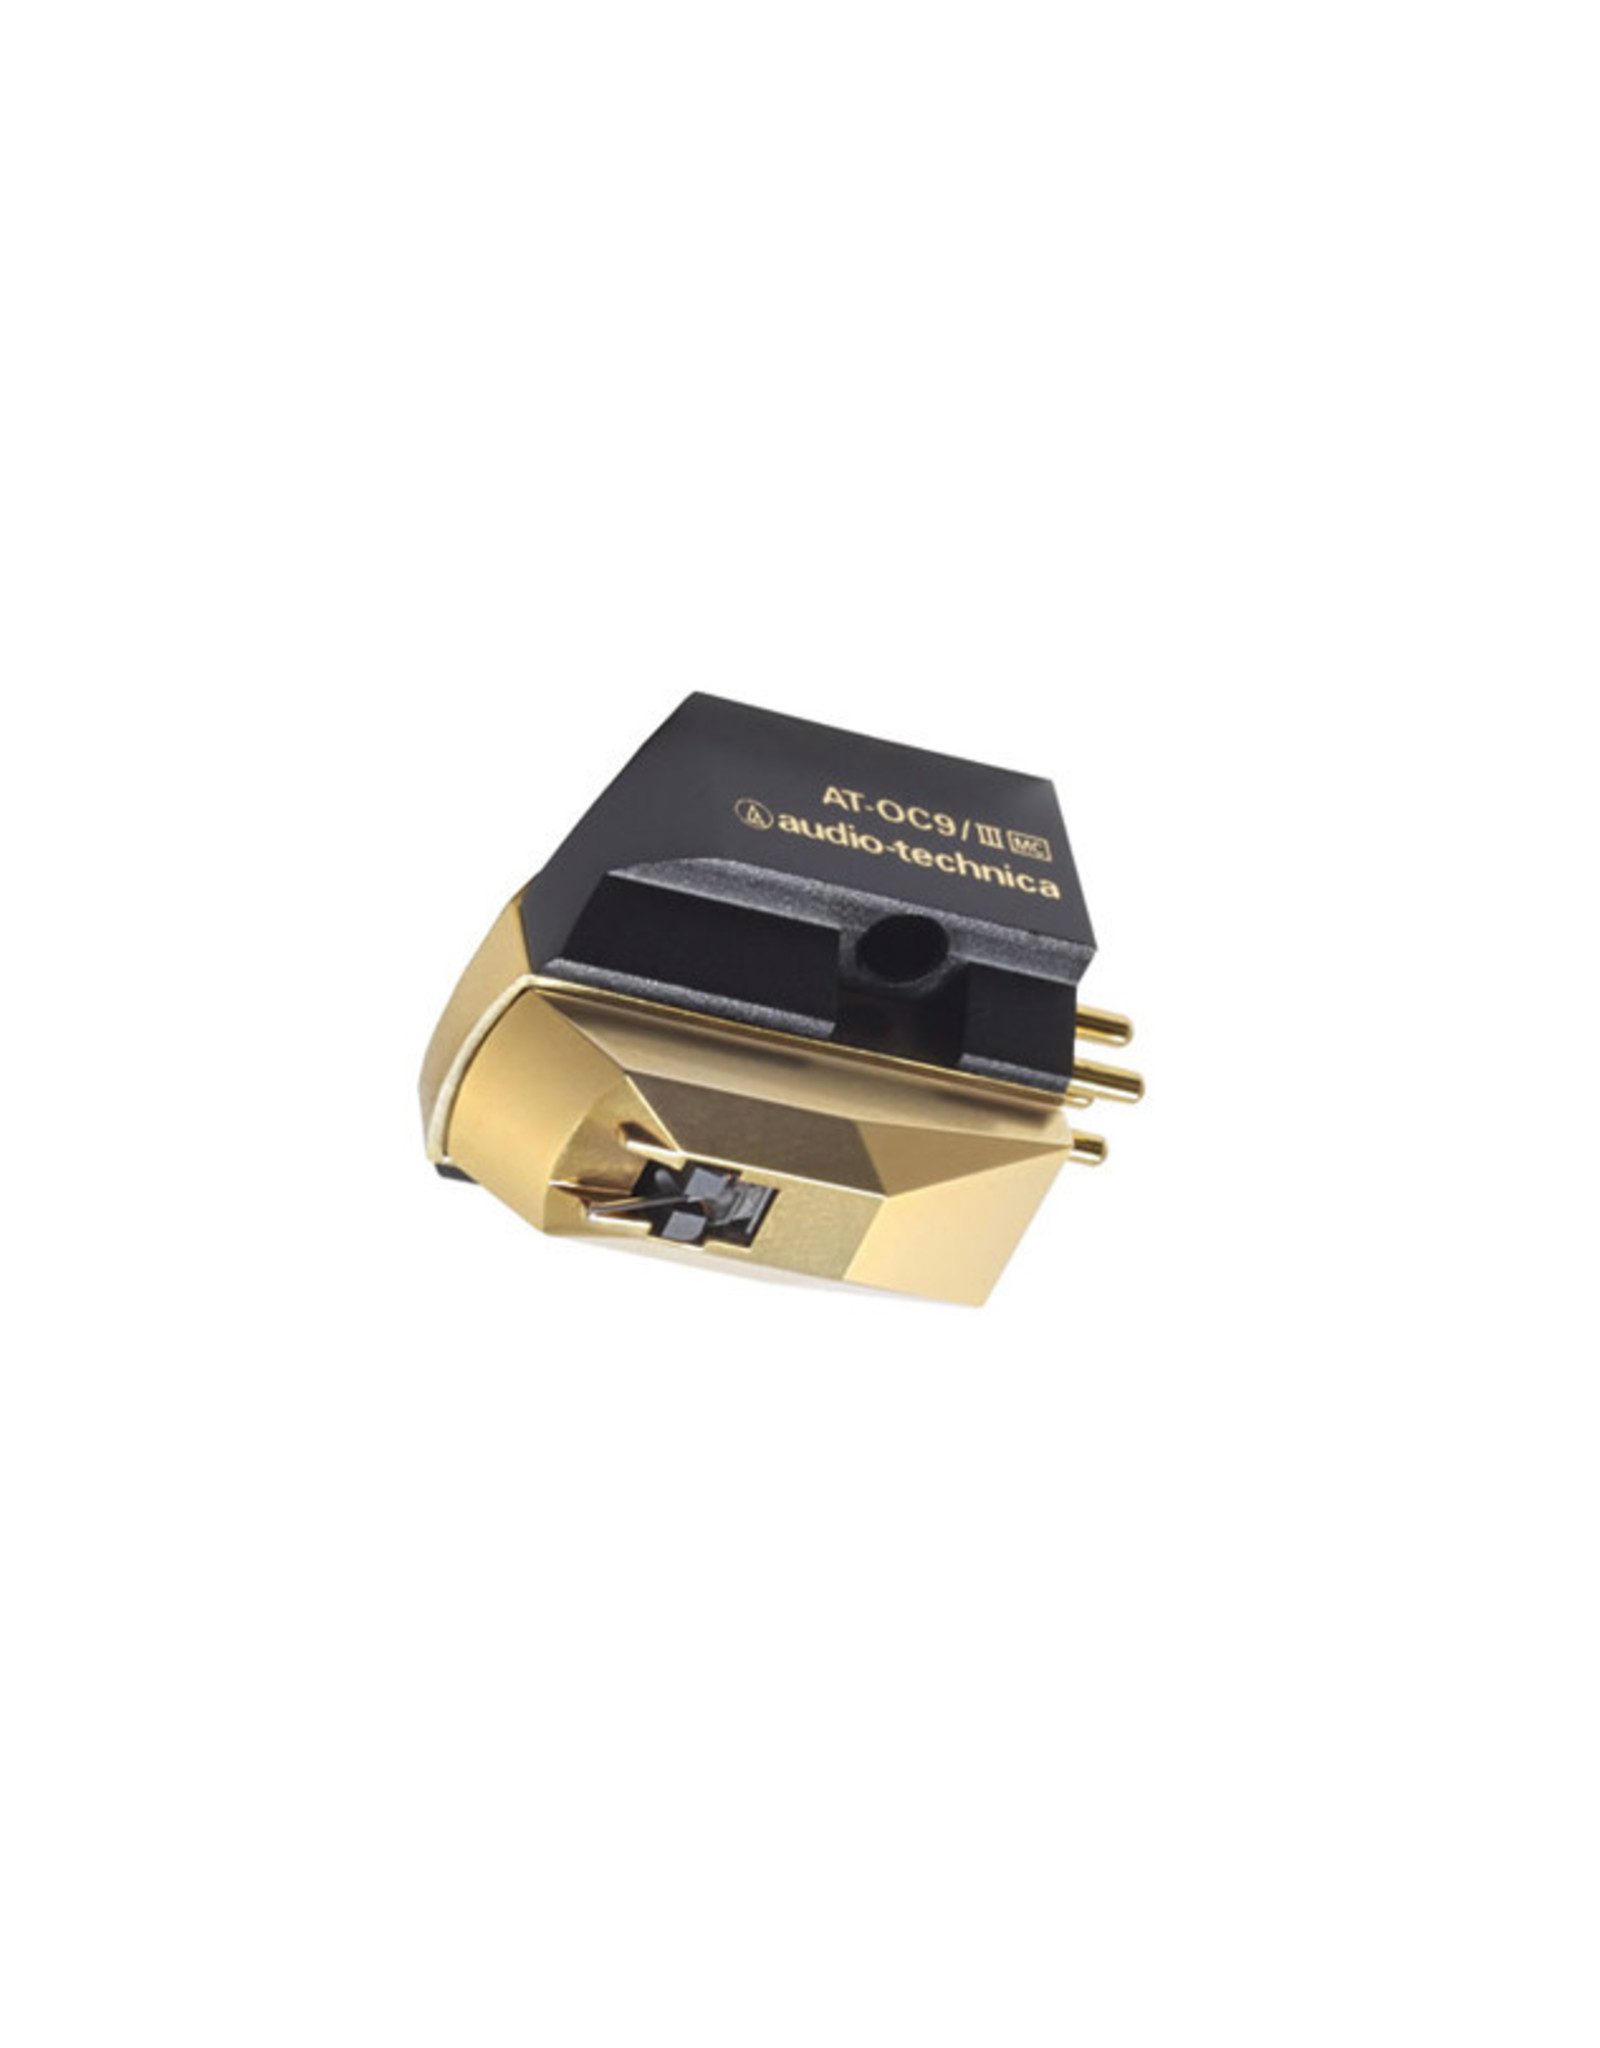 Audio-Technica Audio-Technica AT-OC9/III MC Phono Cartridge (Discontinued Model)